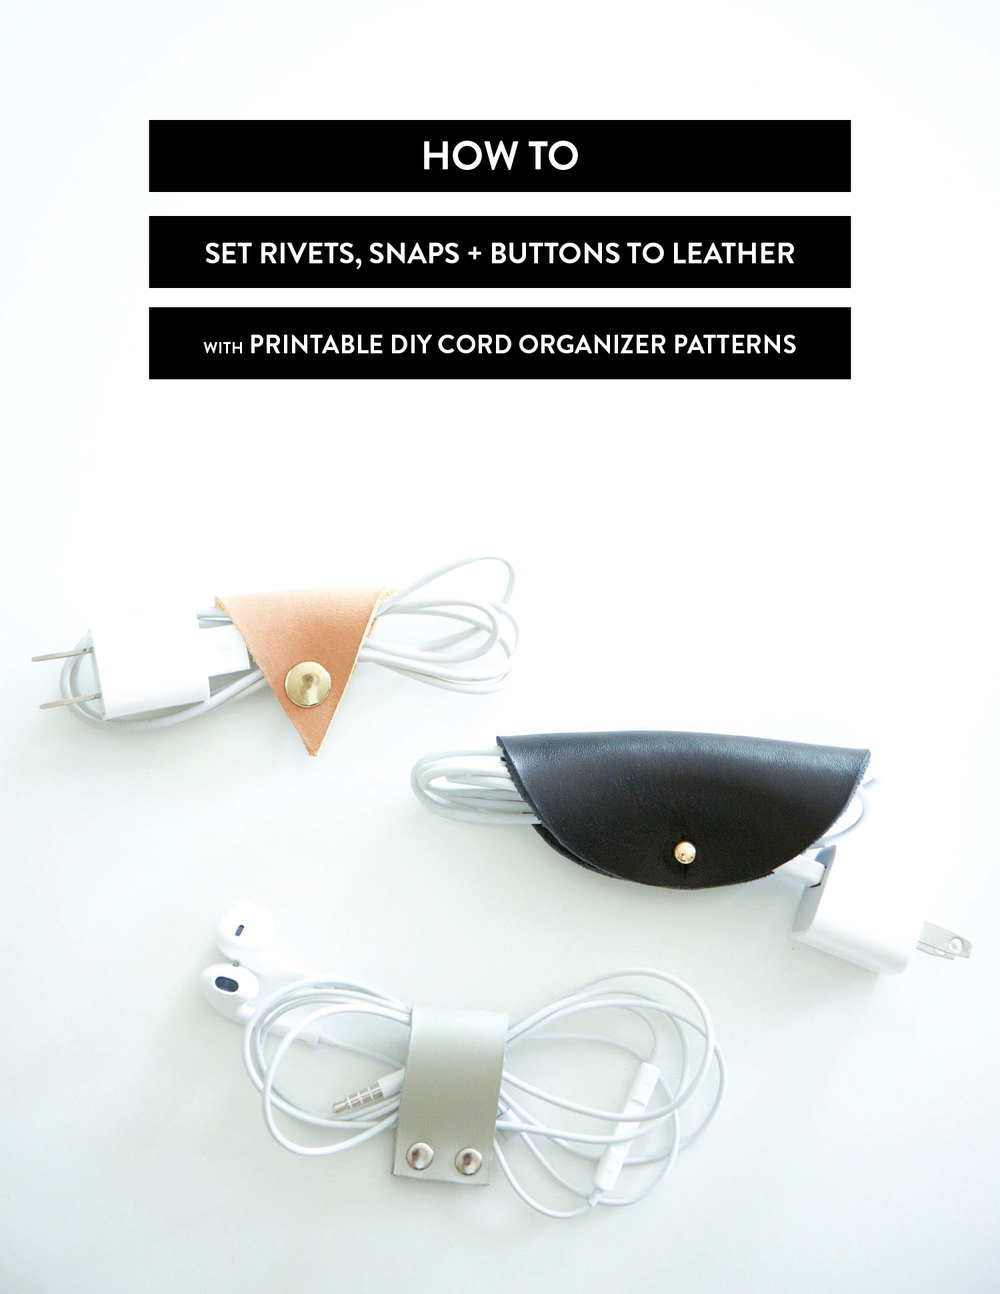 how-to-set-snaps,-rivets-and-buttons-to-leather-BP.jpg